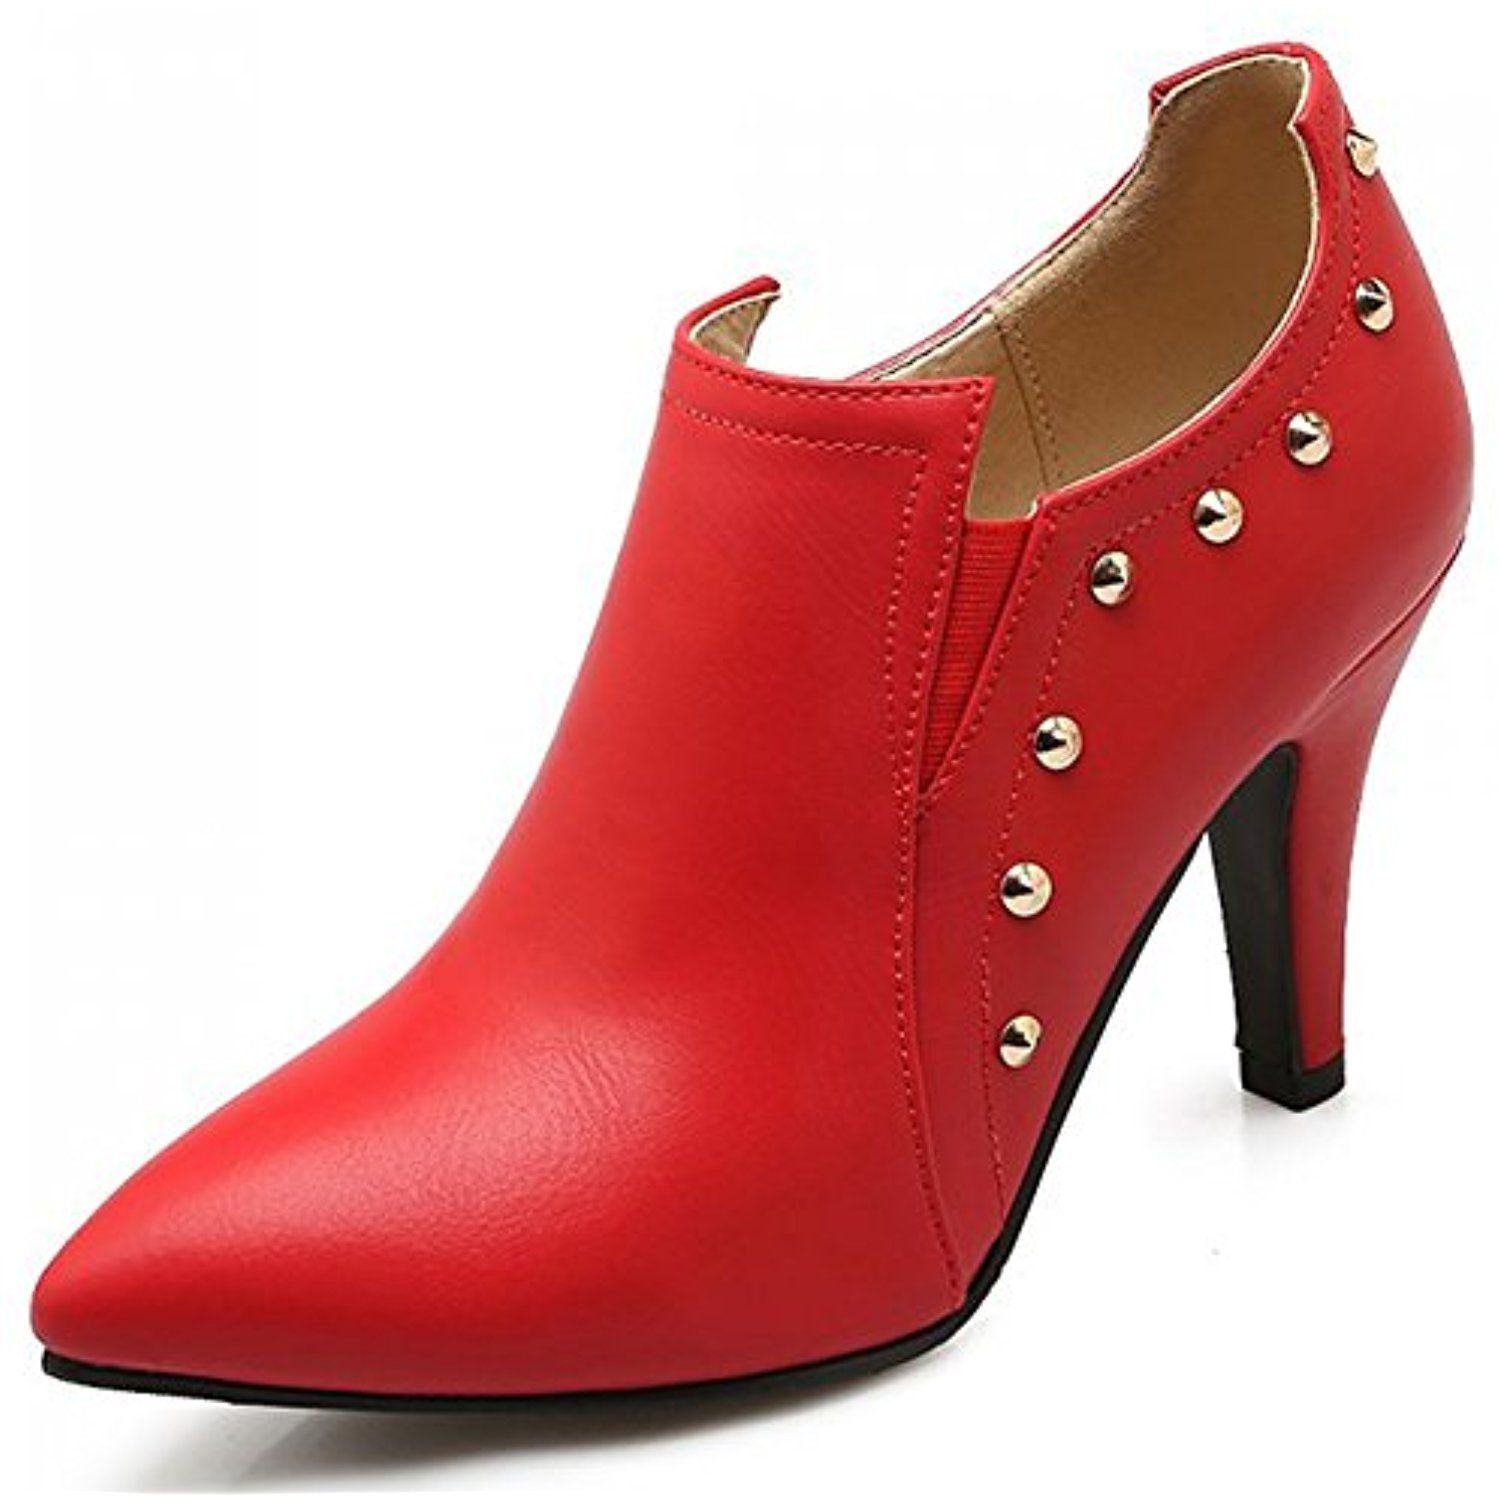 Women's Sexy Rivets Studded Pointed Toe Club Booties Stiletto High Heel Elastic Short Ankle Boots Shoes